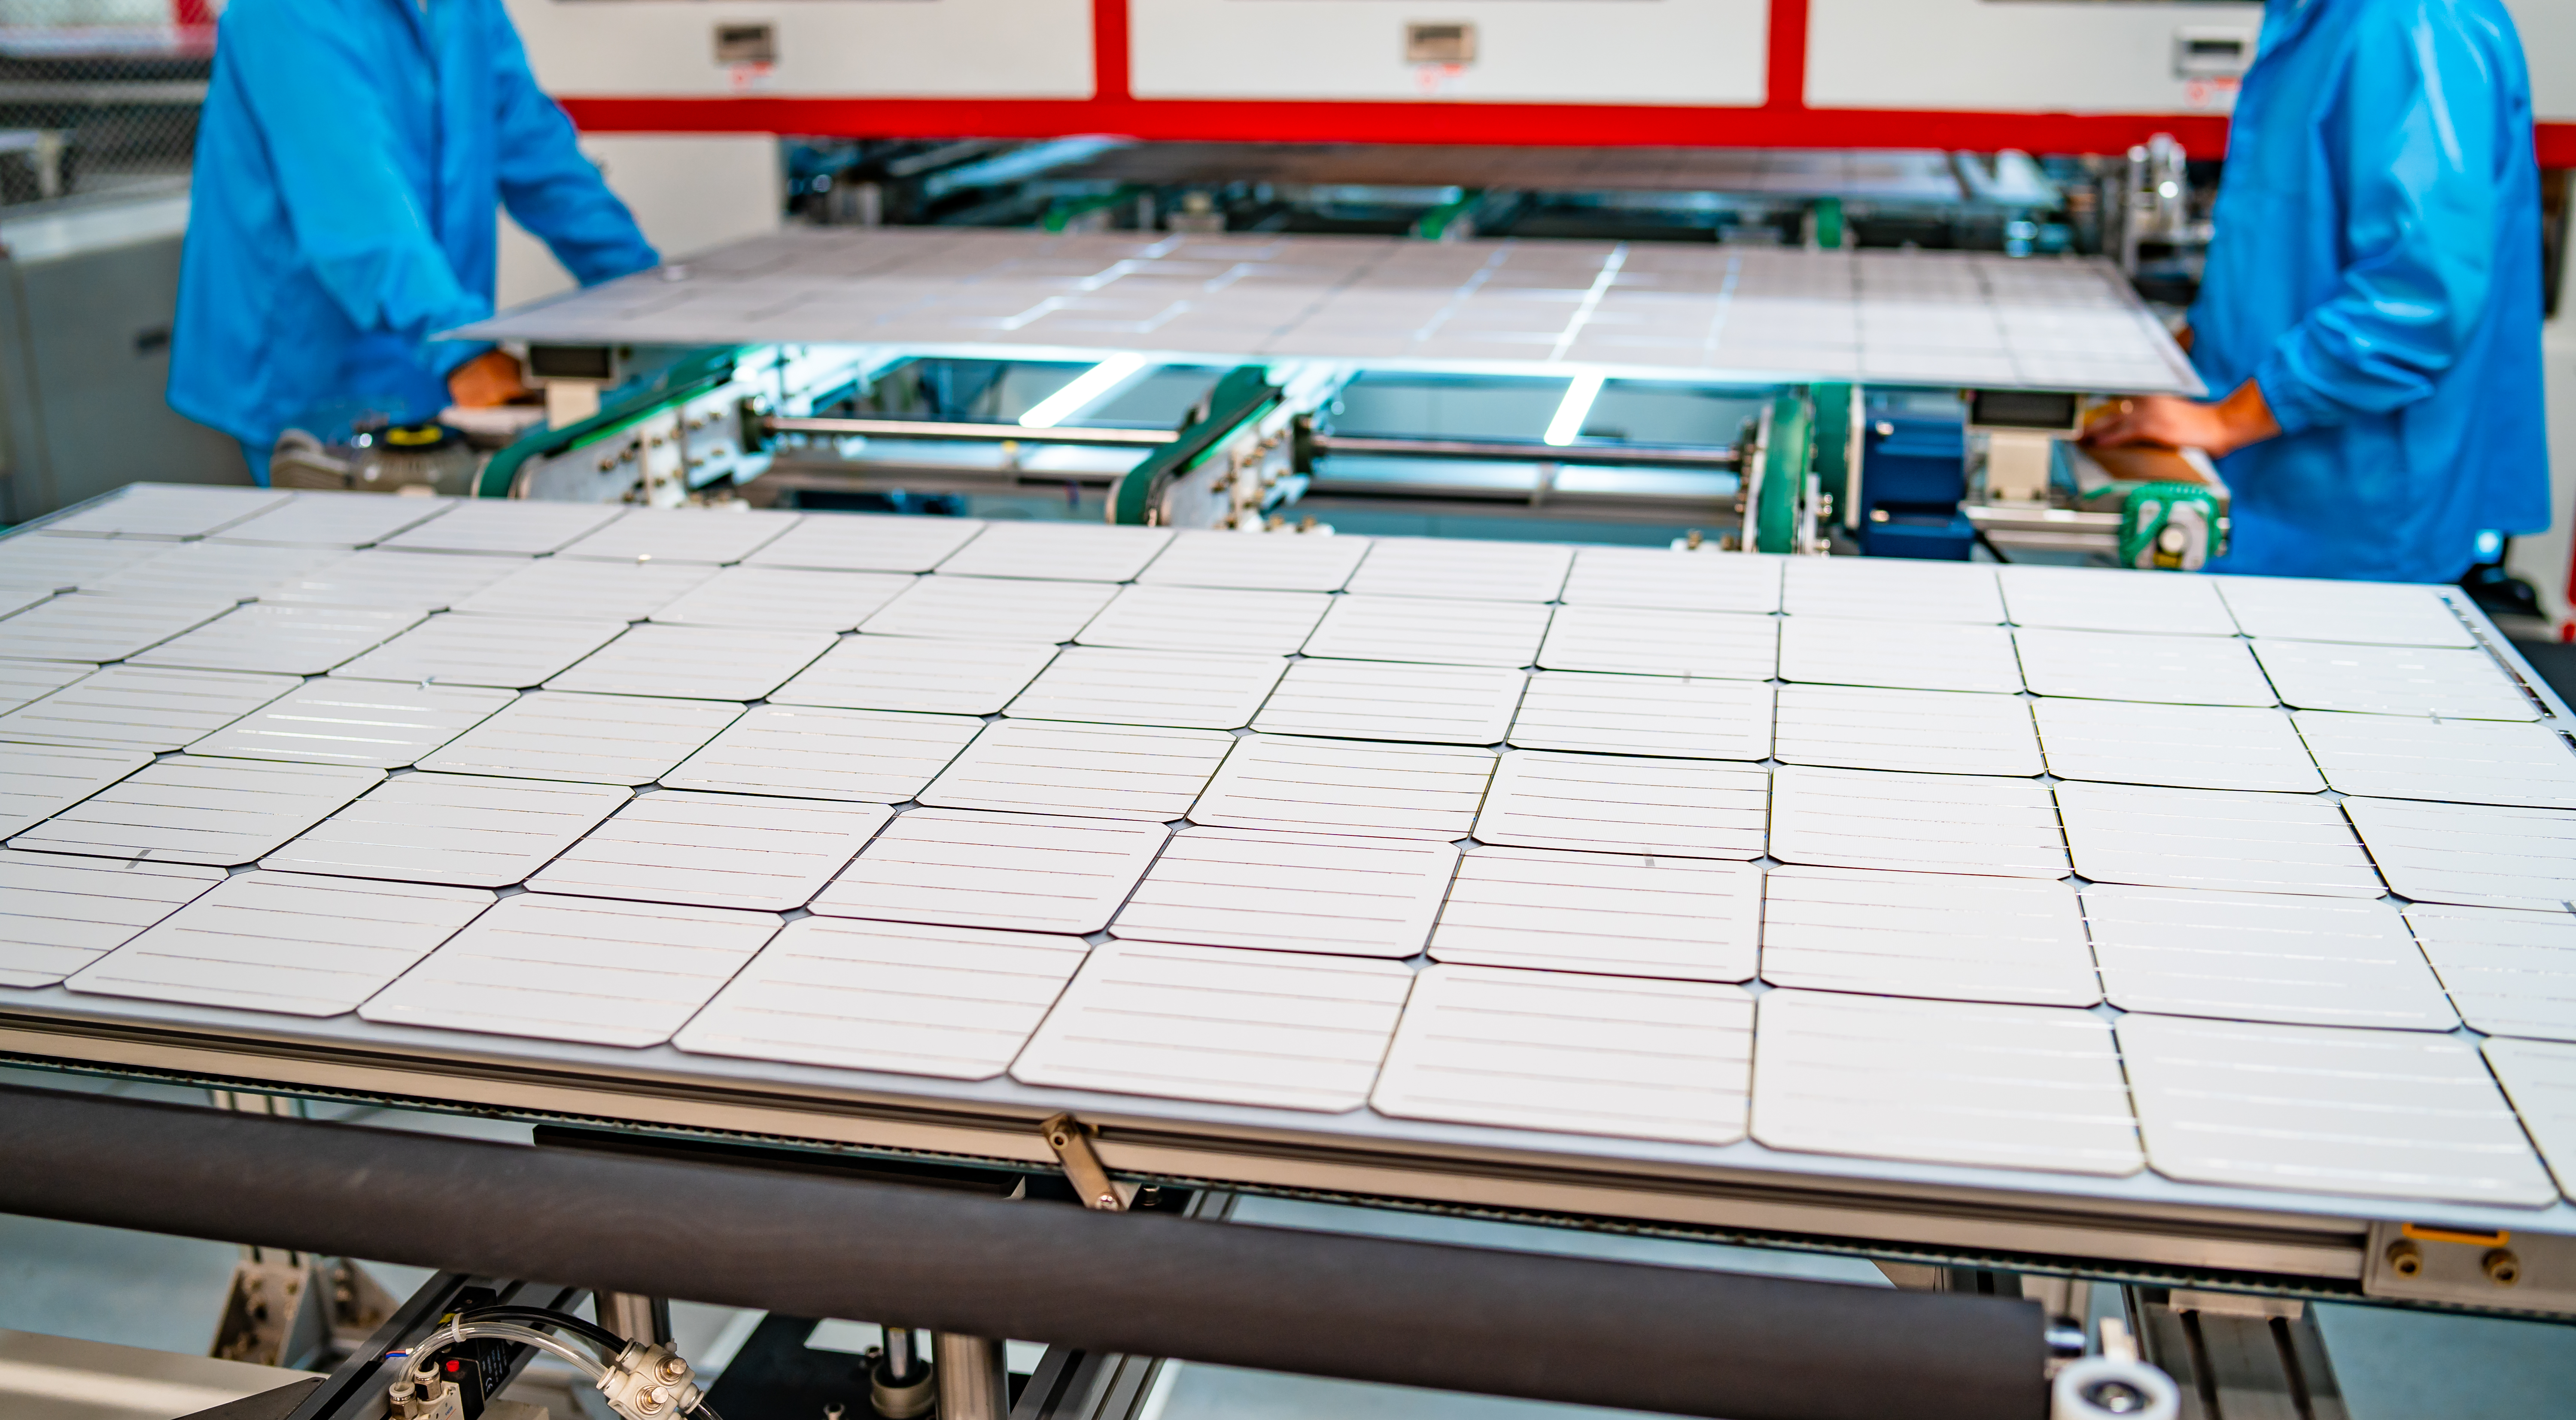 production of solar panels, men working in factory.